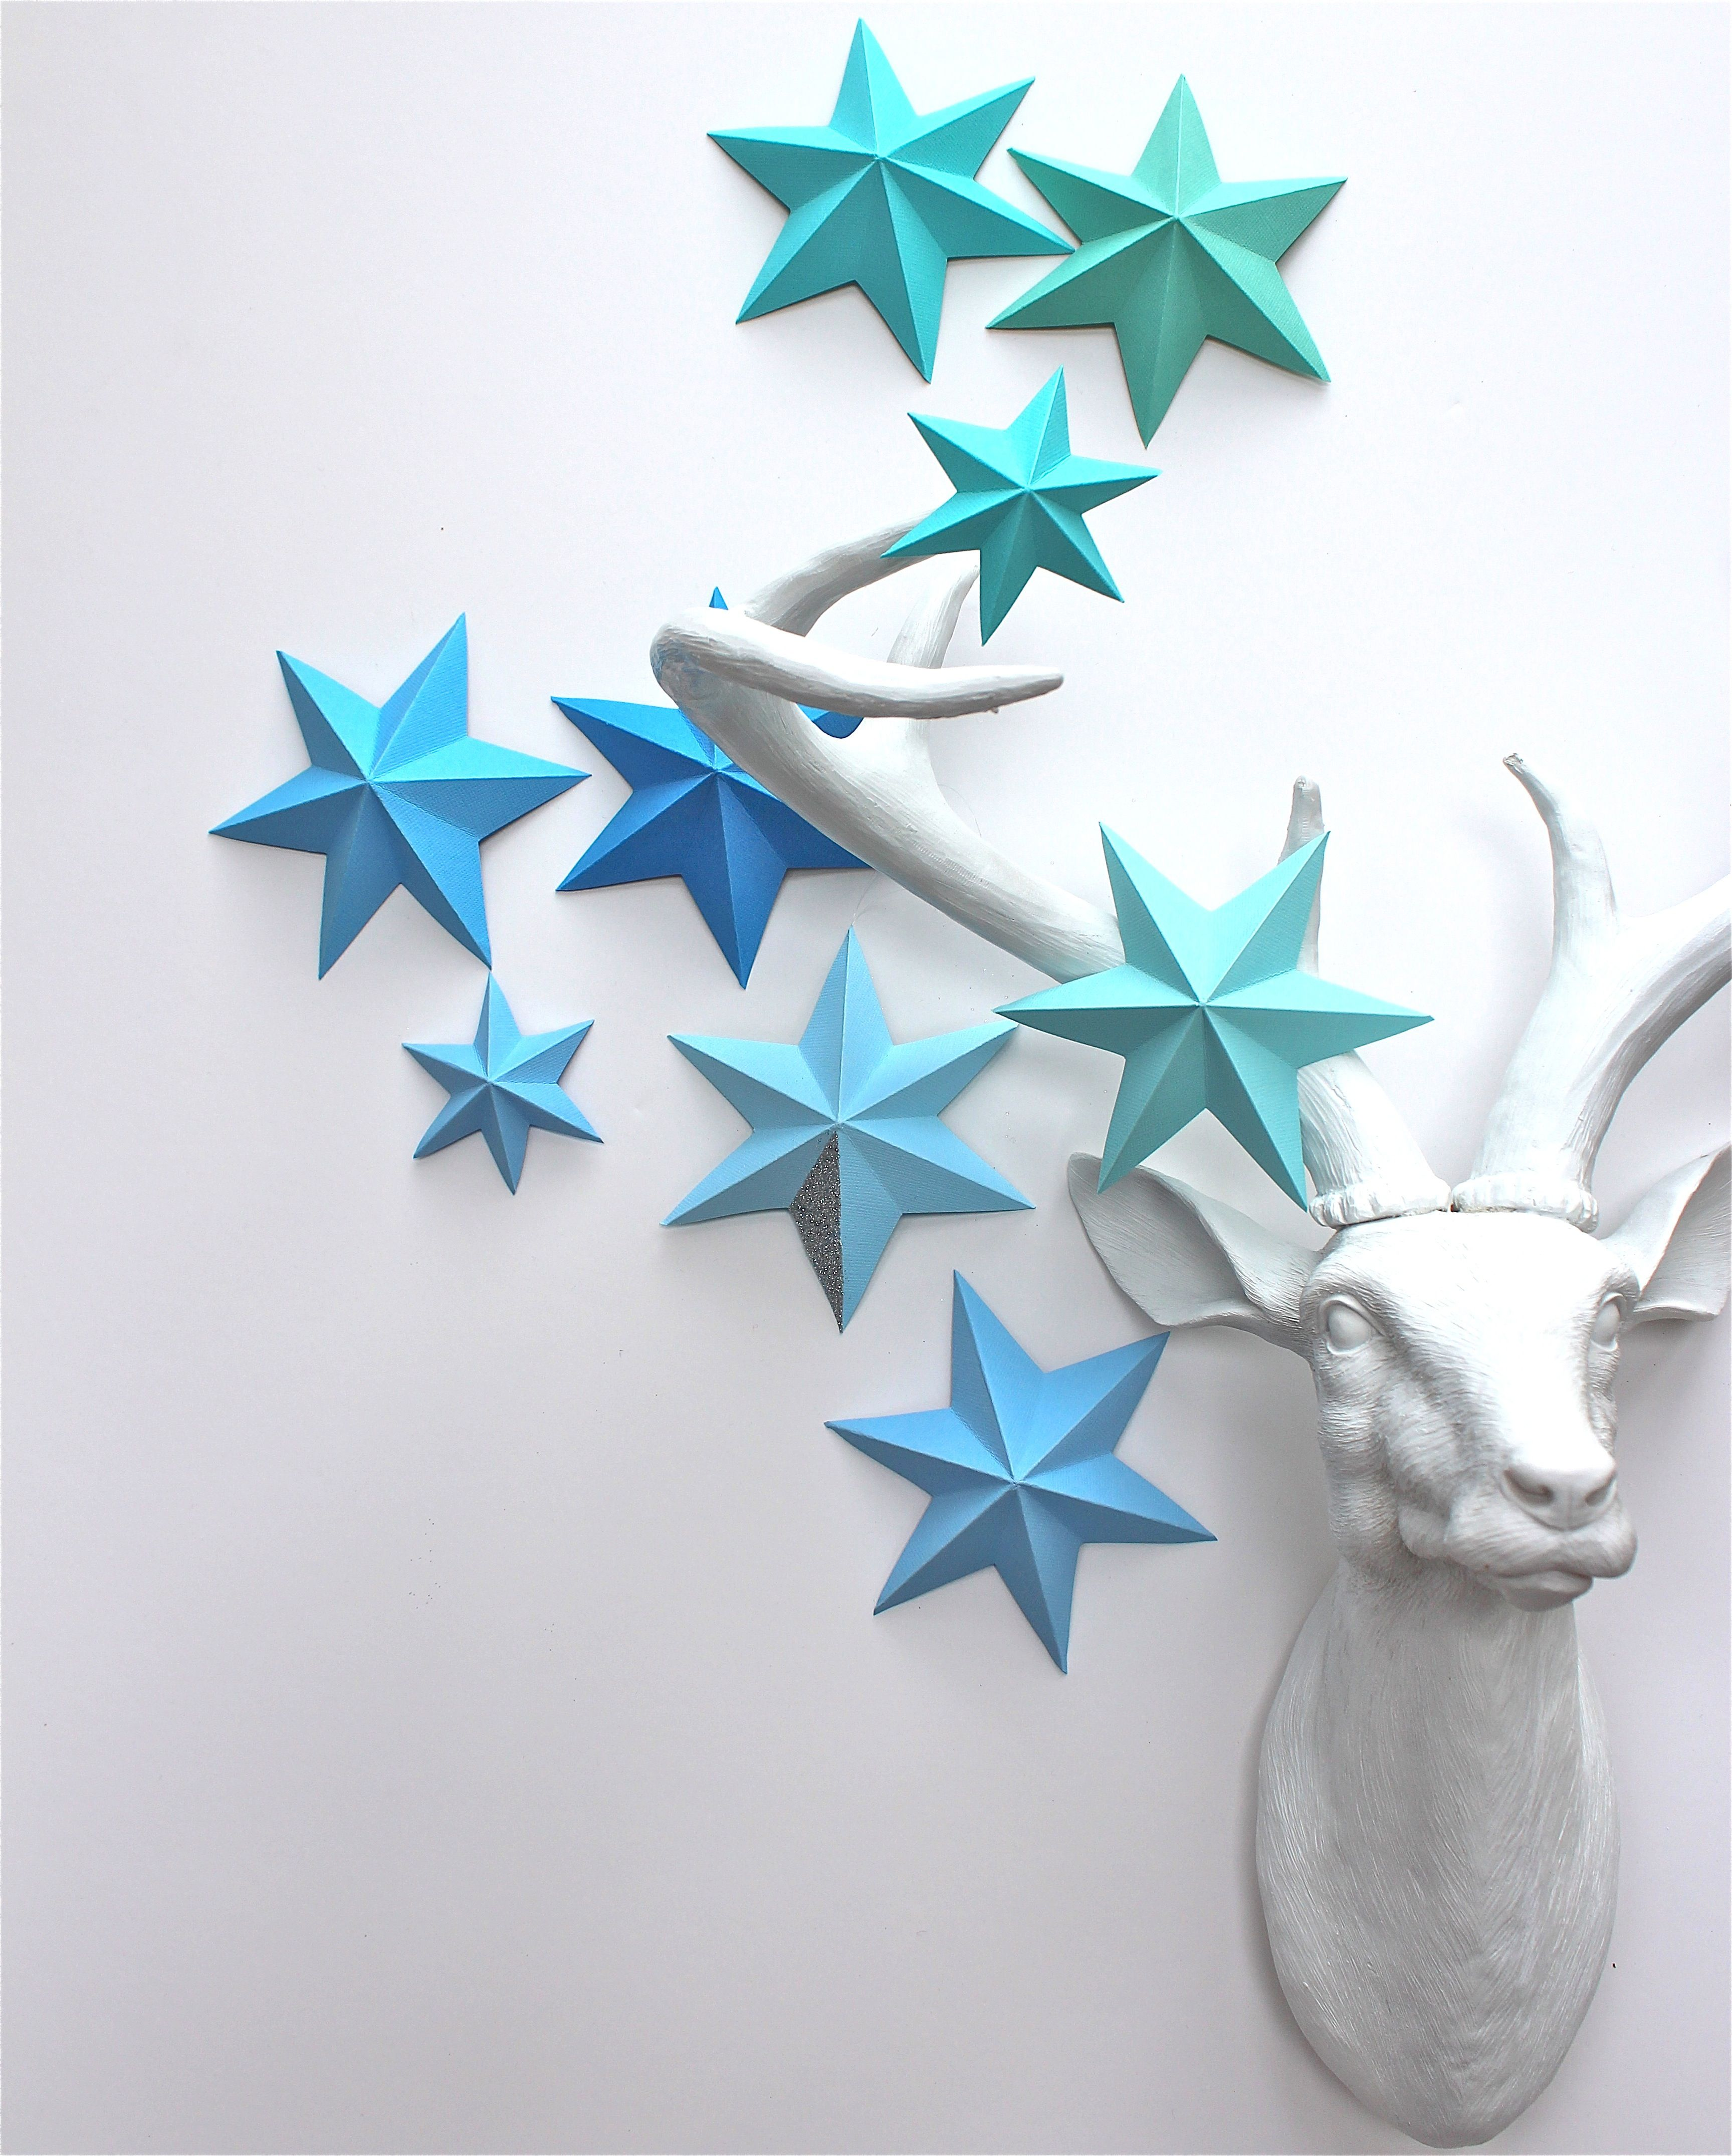 How to make 3d stars3d star making tutorial and lots of decor how to make a paper lucky star if you love origami youll love this project exquisite little paper stars can be used for decorations jewelery craft jeuxipadfo Choice Image